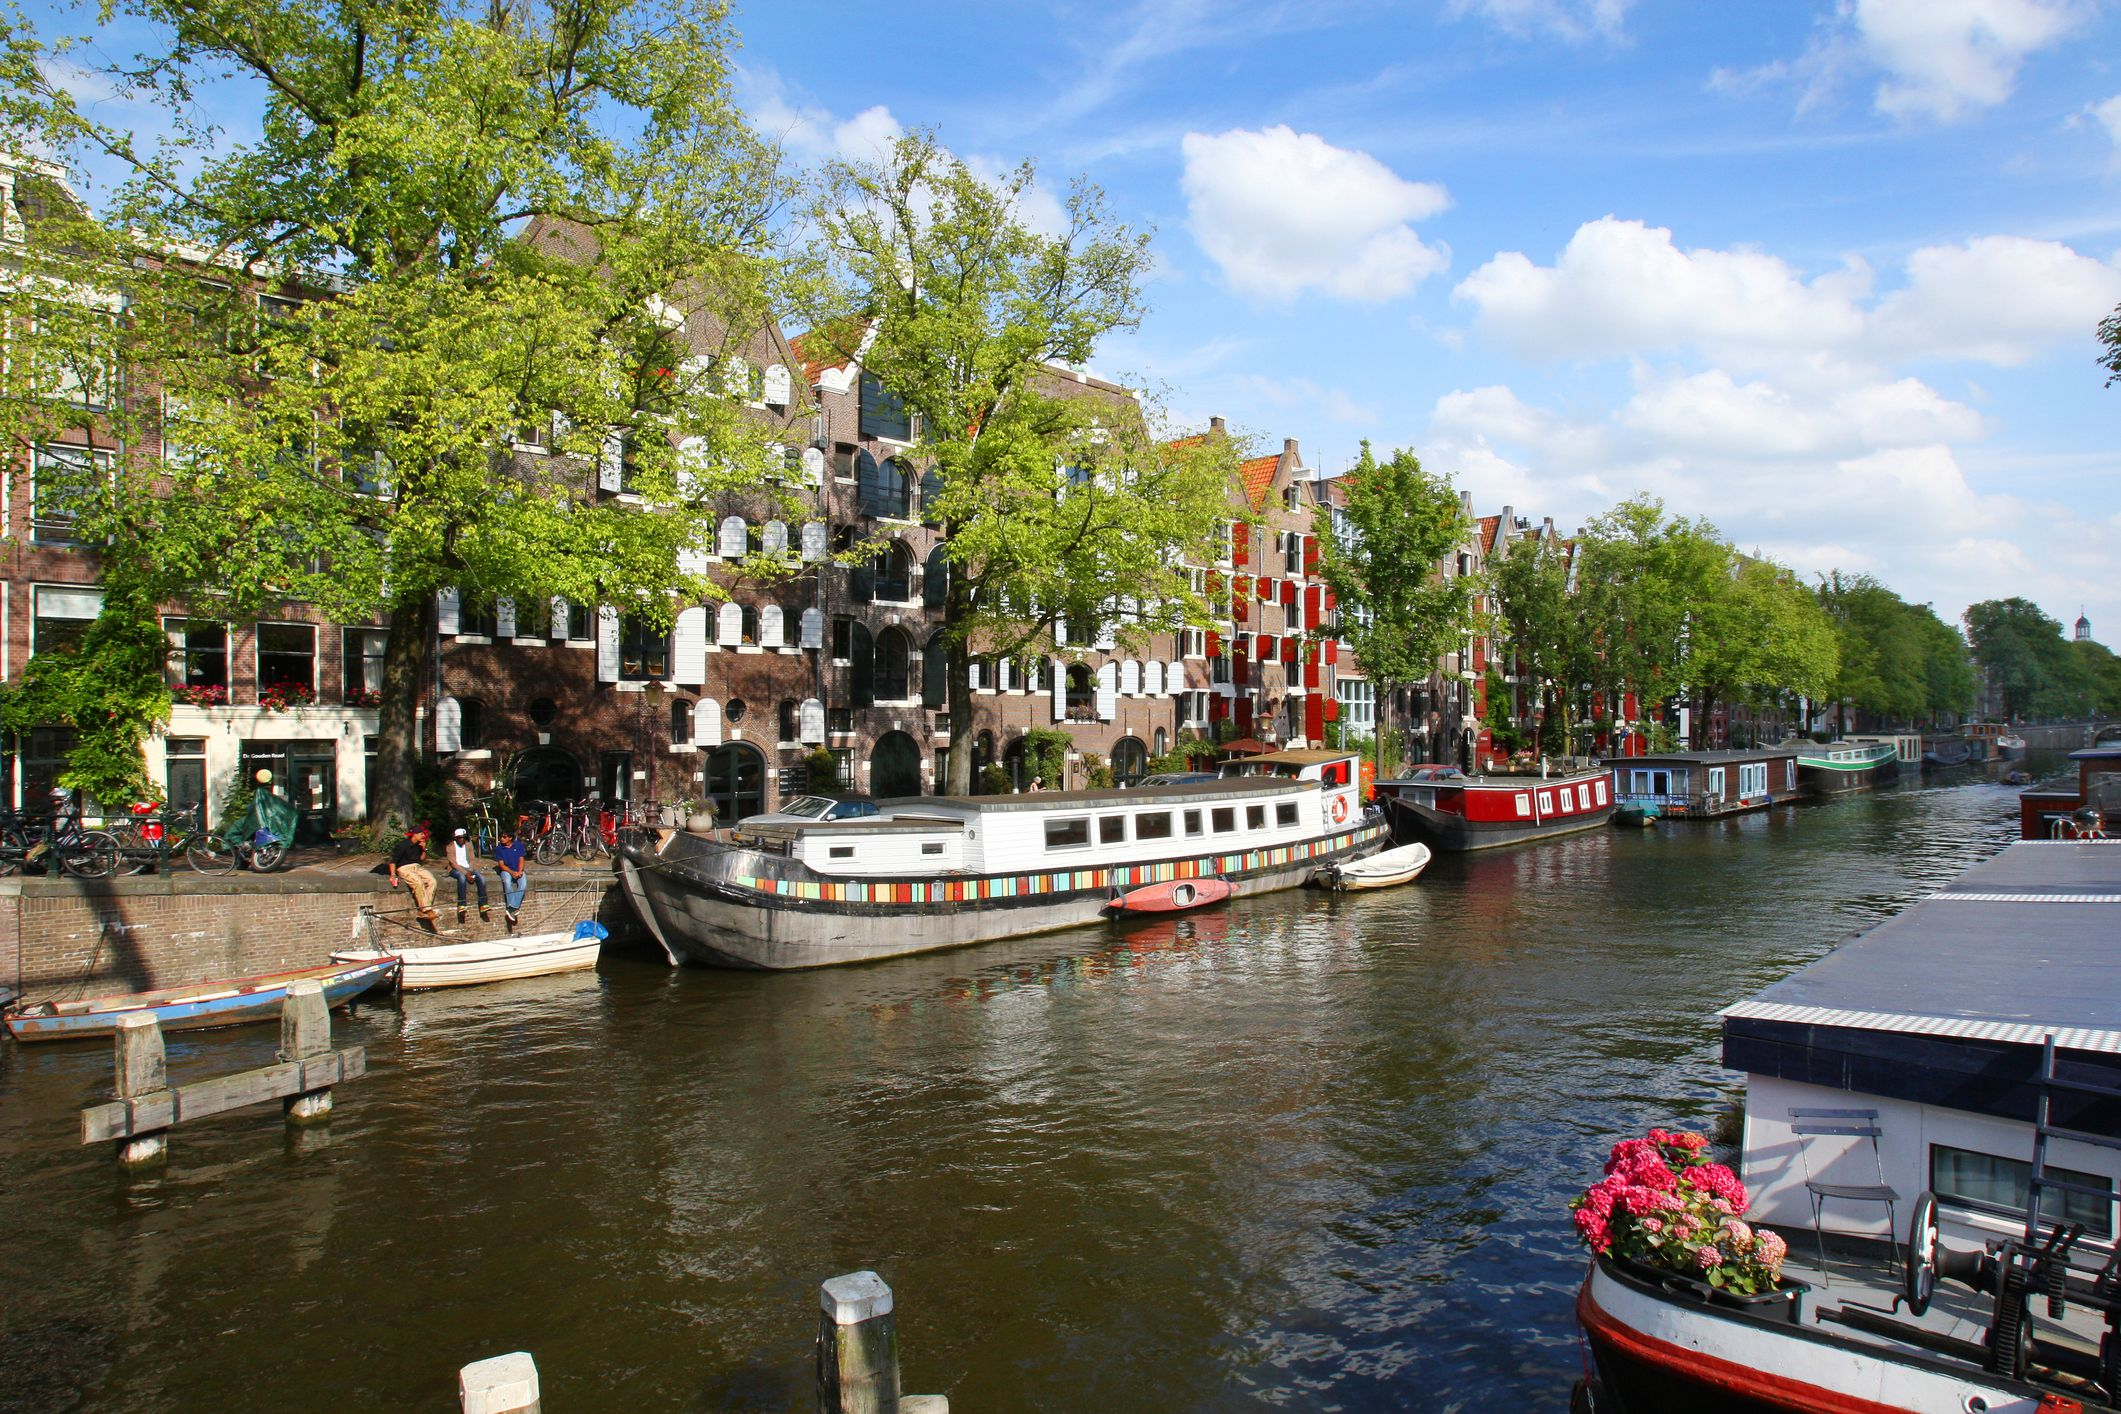 A beautiful canal and street in Amsterdam